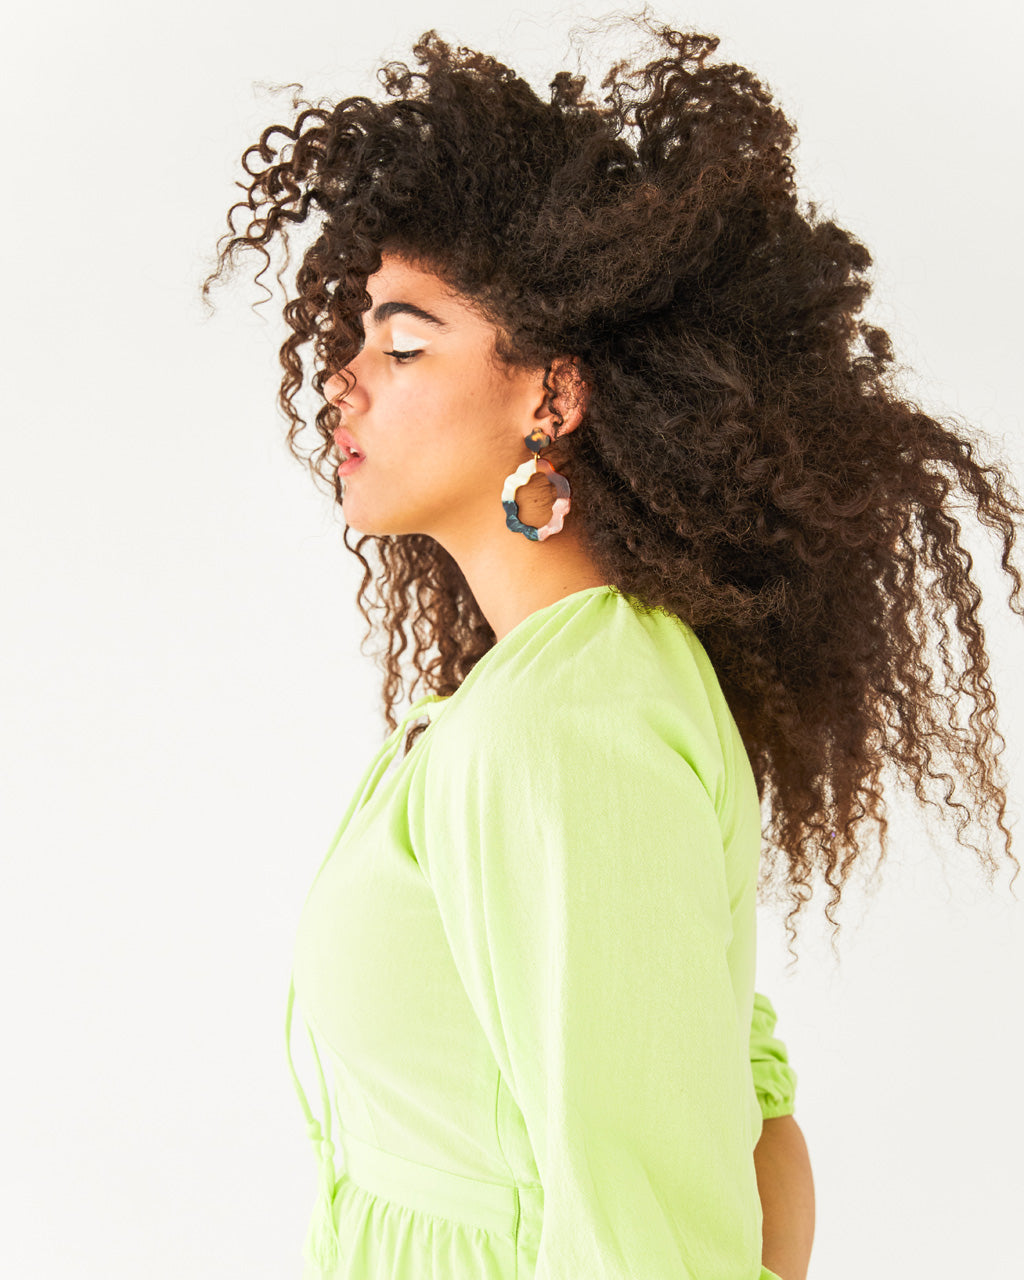 upper body shot of model wearing neon green midi dress with quarter length sleeves